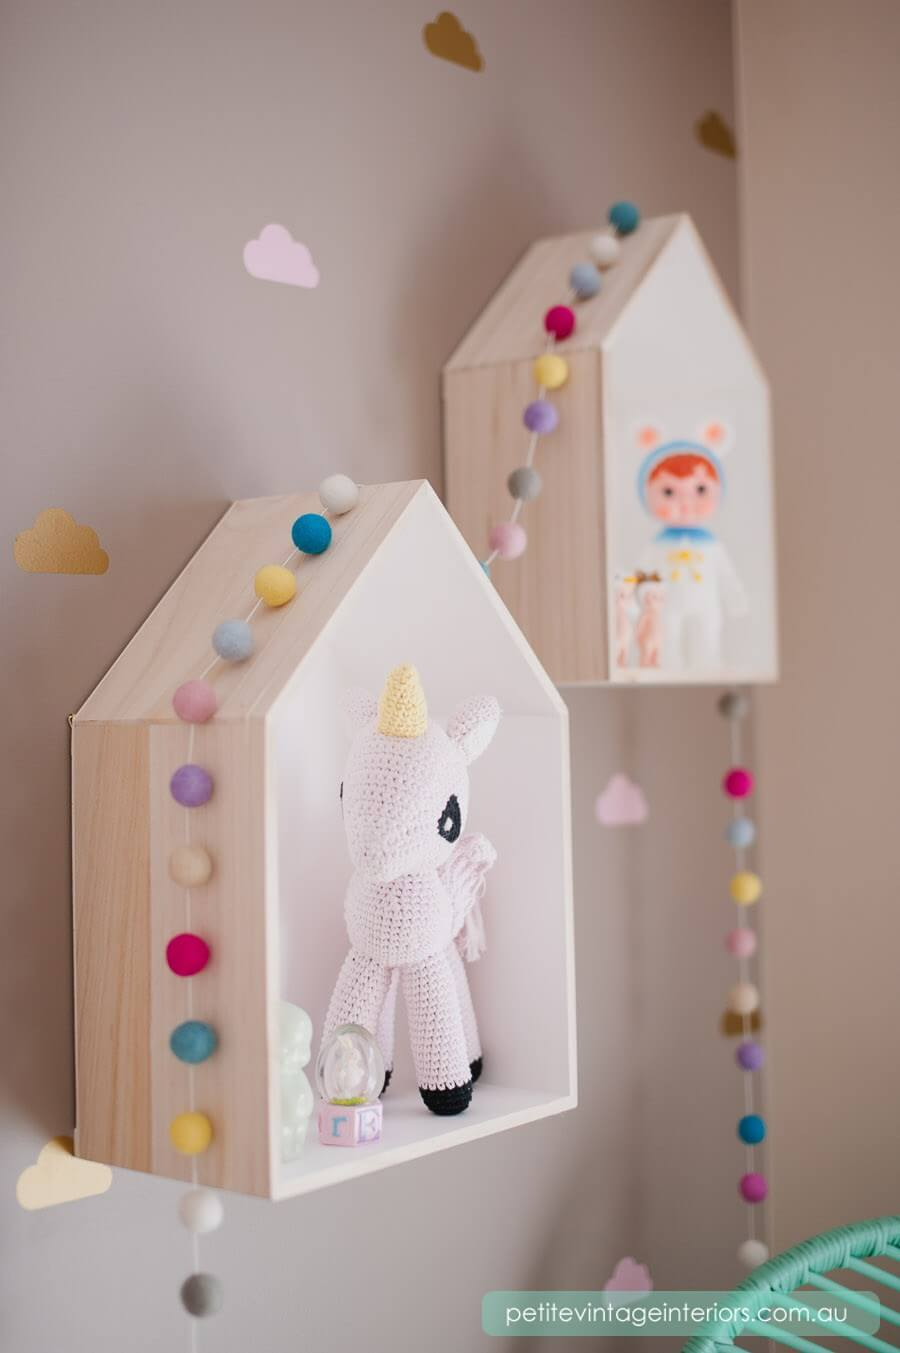 Floating House Shelves for Little Friends